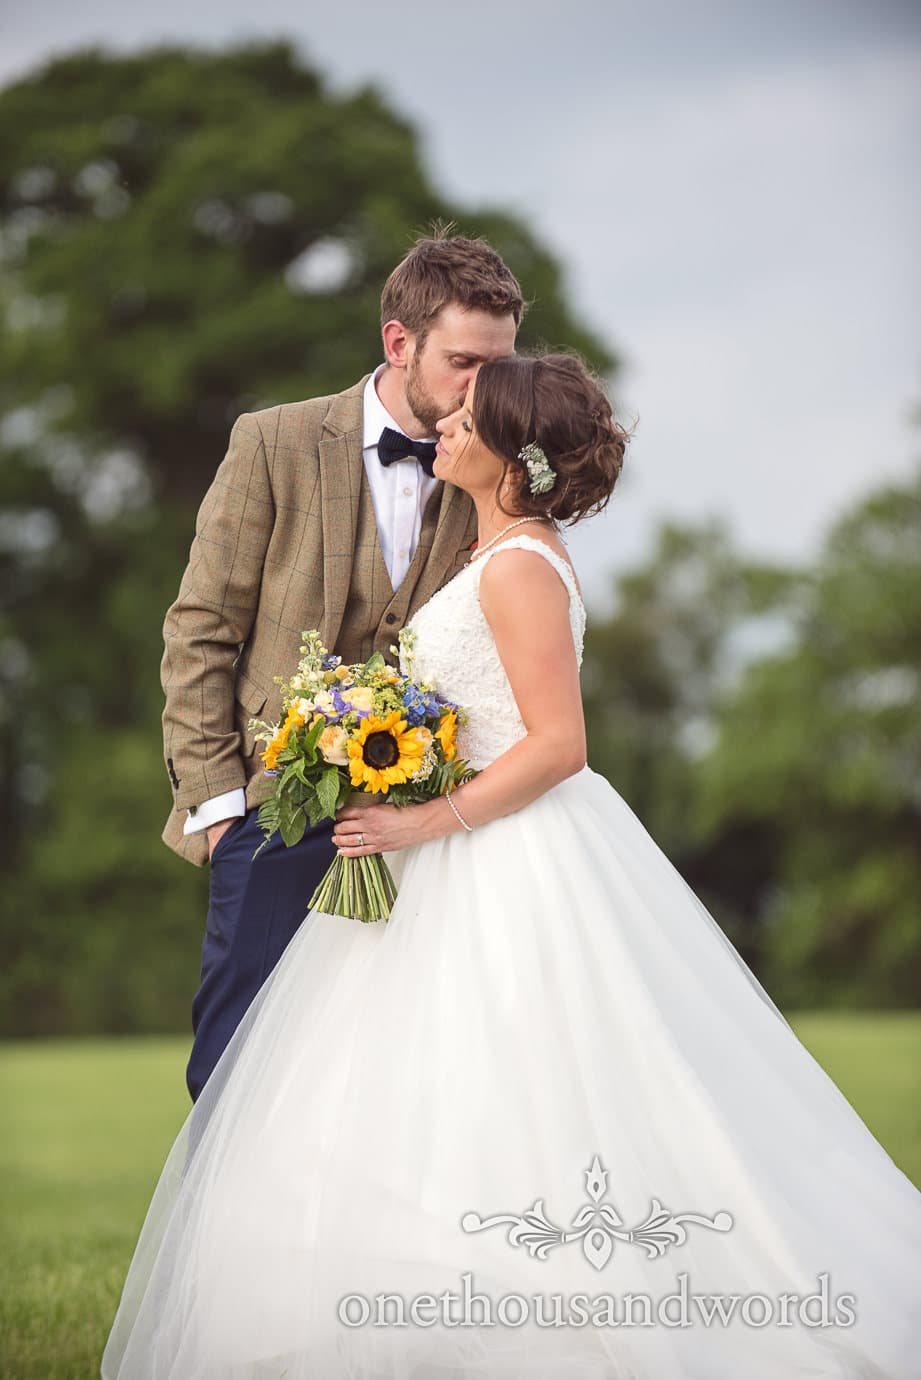 Newly-weds share a kiss in a field at rustic wedding in Dorset countryside